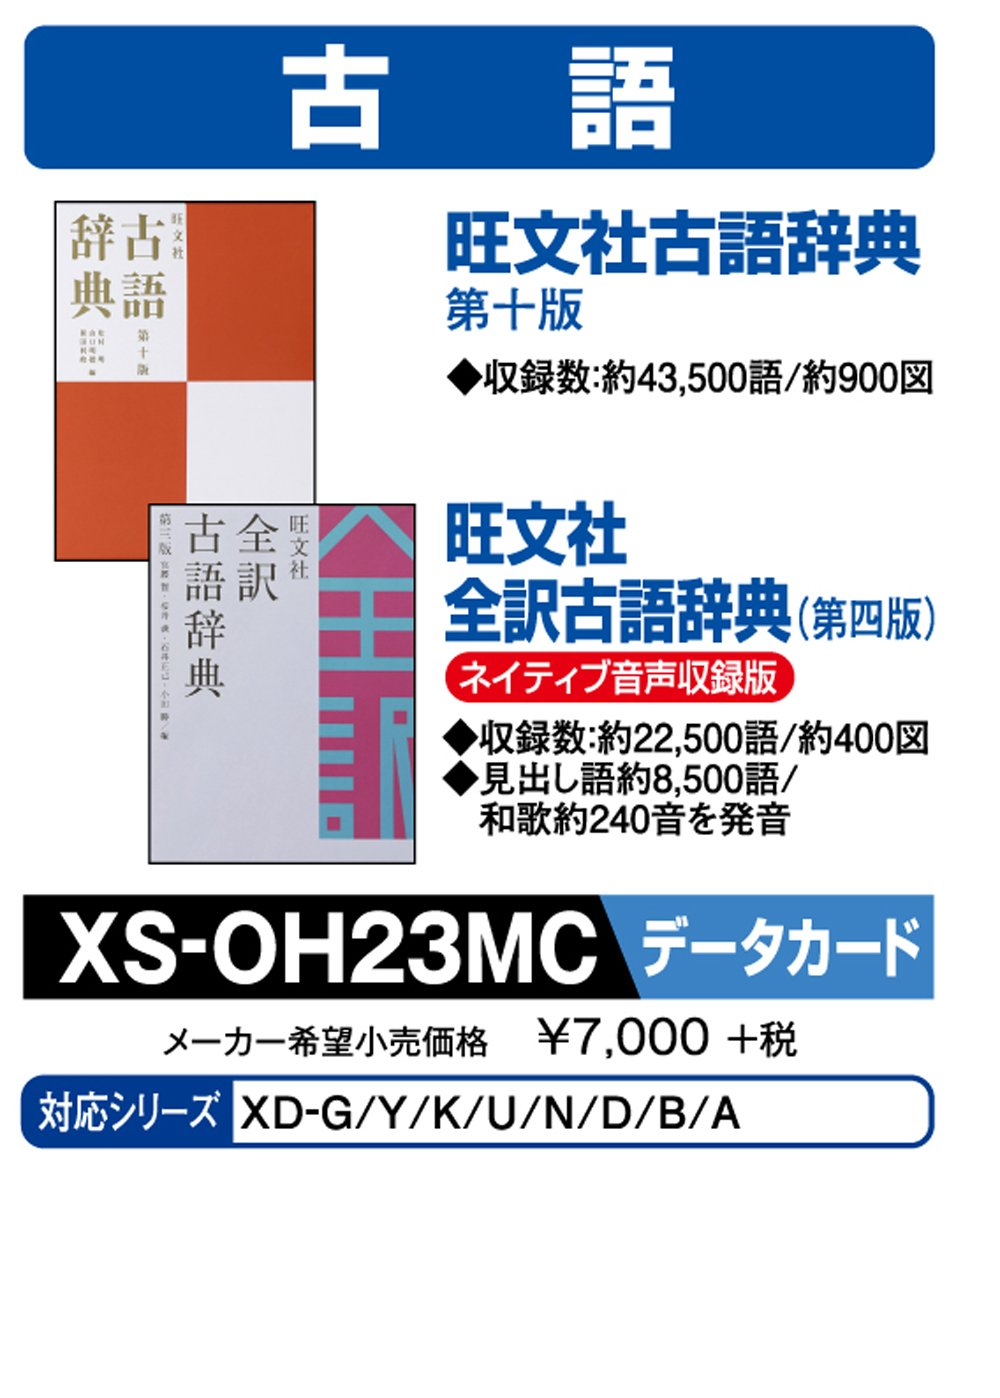 Casio electronic dictionary additional content data card version Obunsha archaic dictionary complete translation archaic dictionary XS-OH23MC